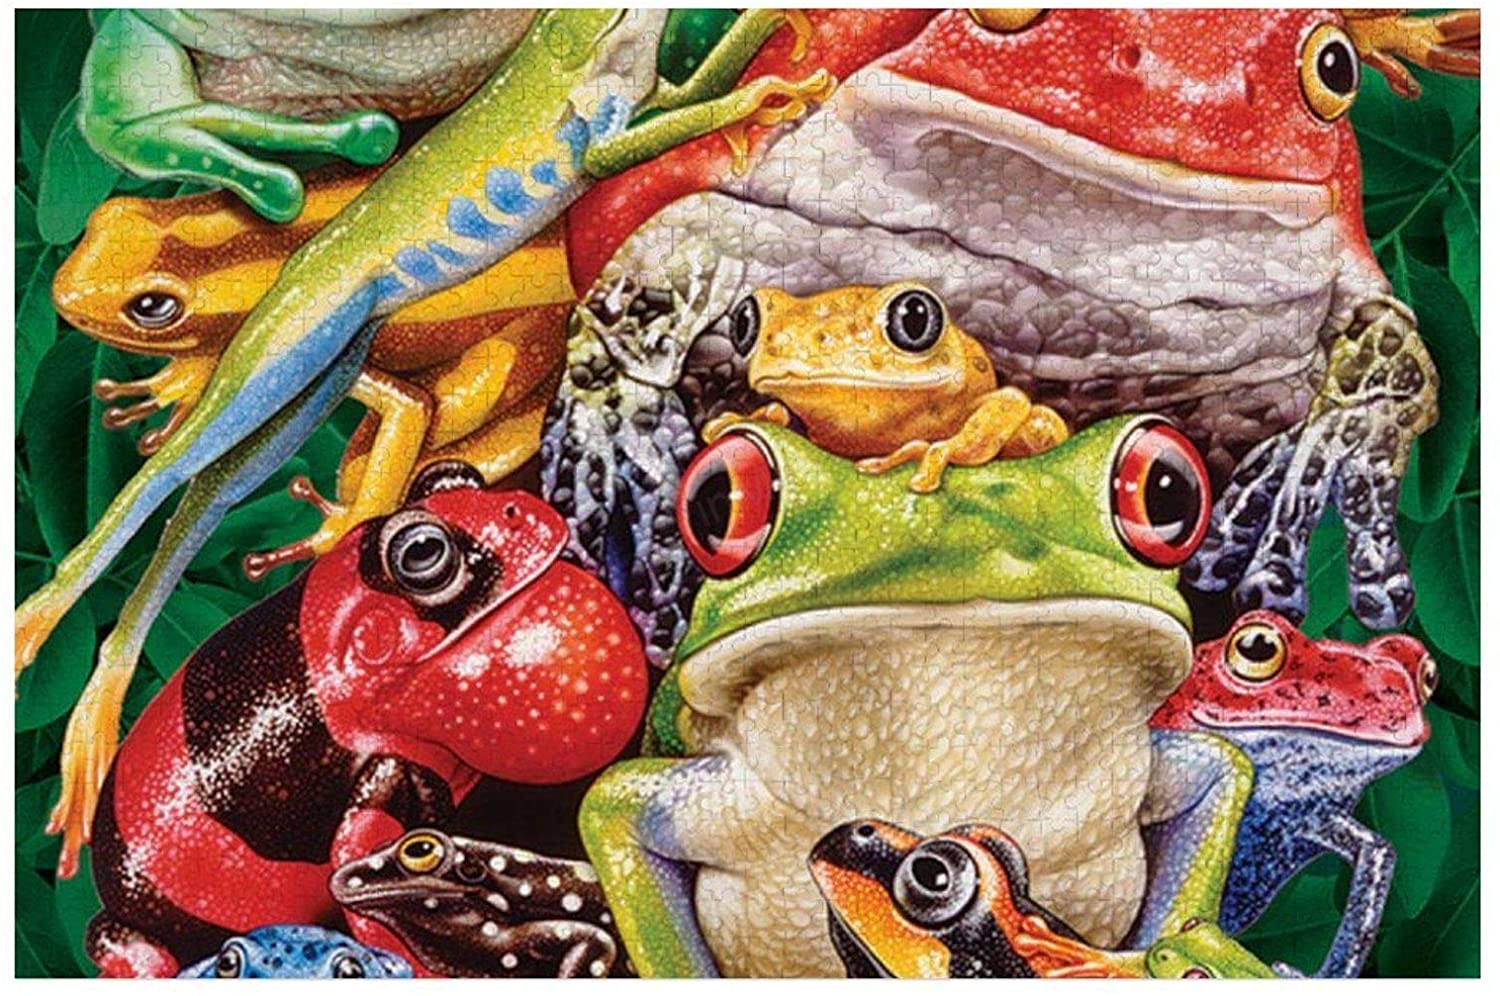 500 Piece Wooden Jigsaw Puzzle Frog Business Large Puzzle Game for Adults and Teenagers